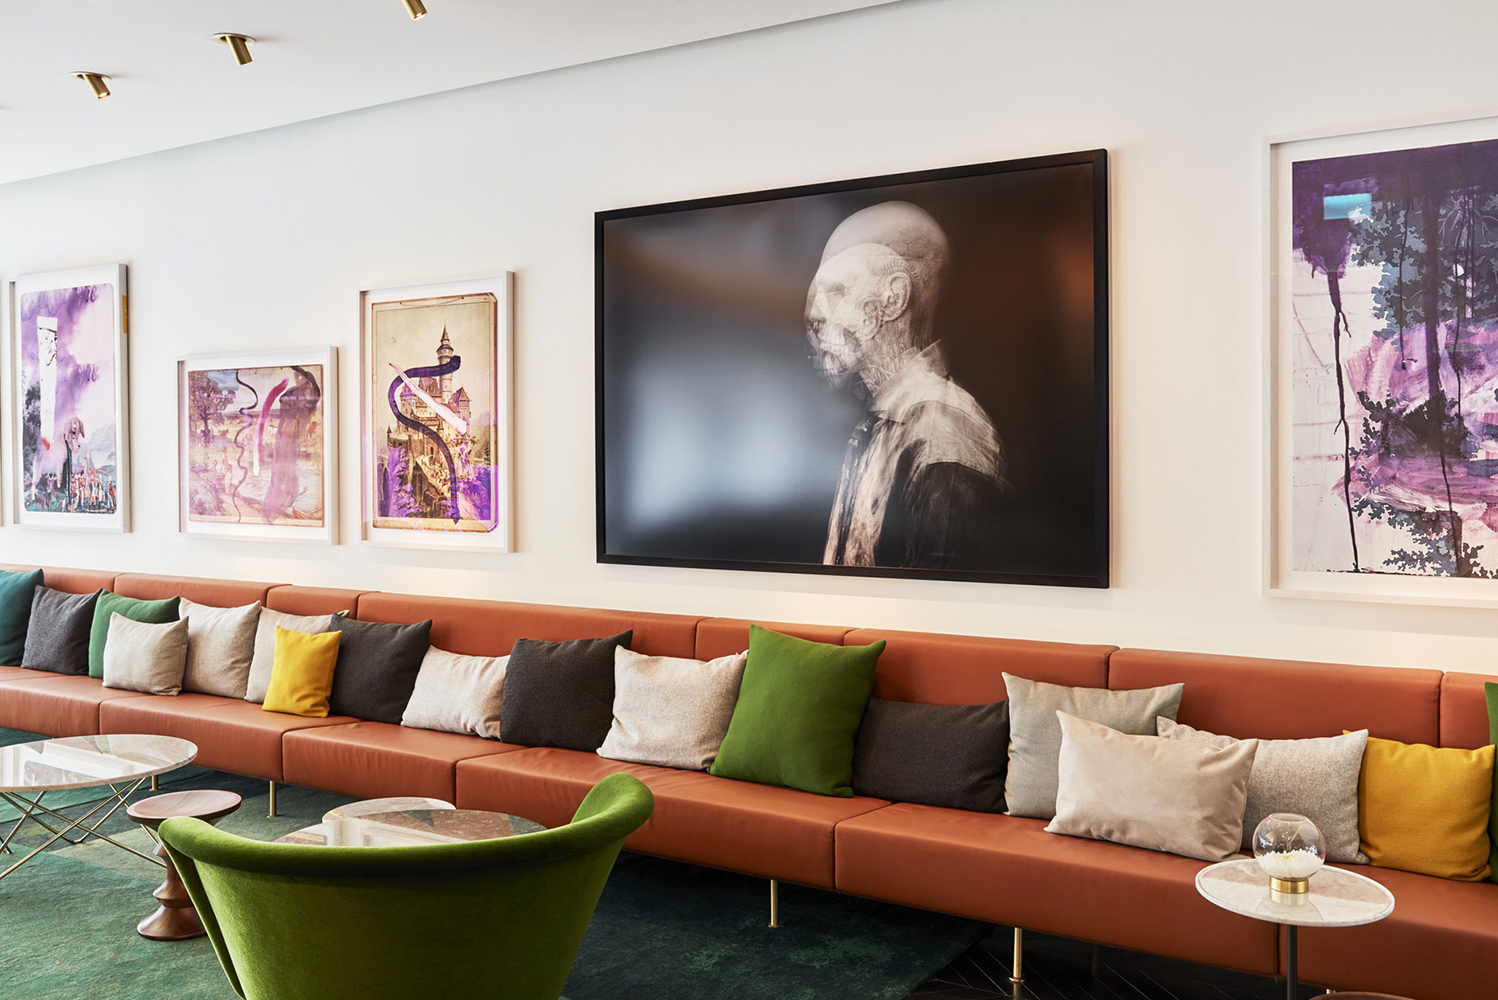 Roomers Munich opened as the fourth property under Marriott International's Autograph Collection in Germany.